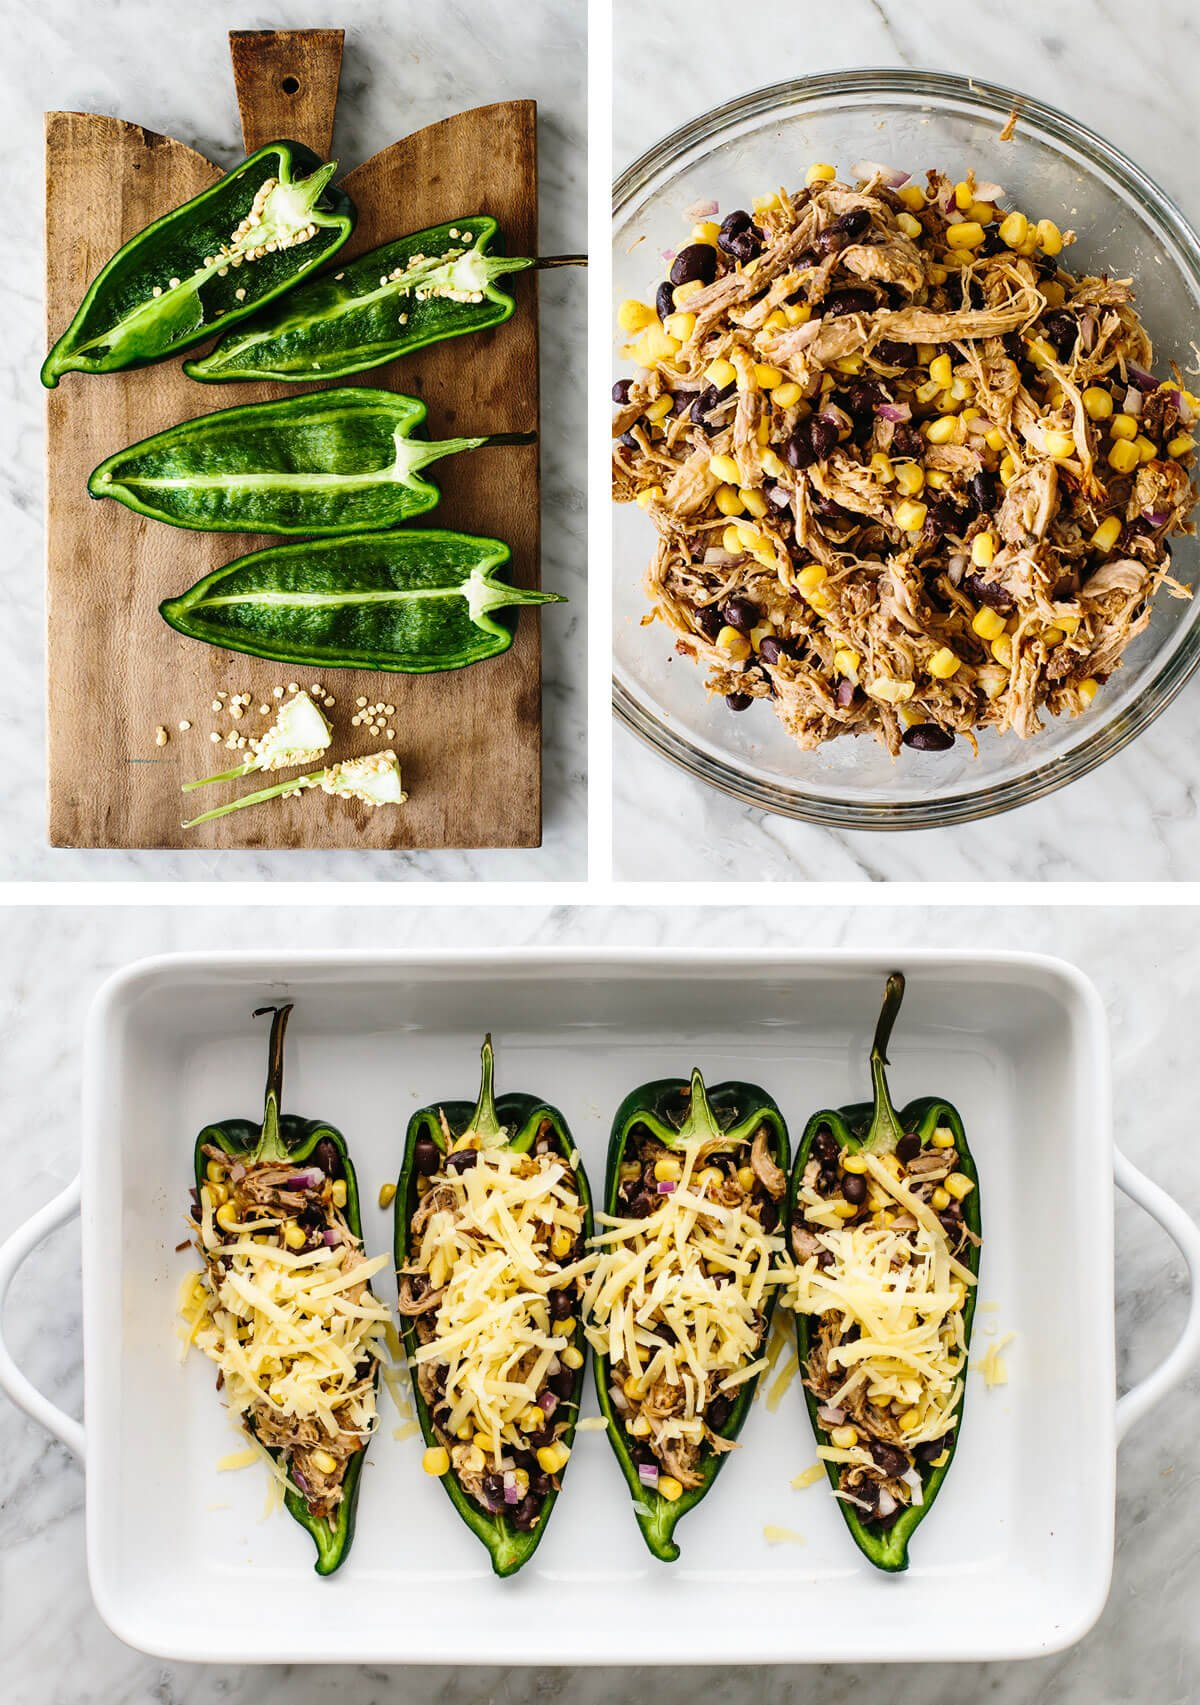 Making carnitas stuffed poblano peppers.